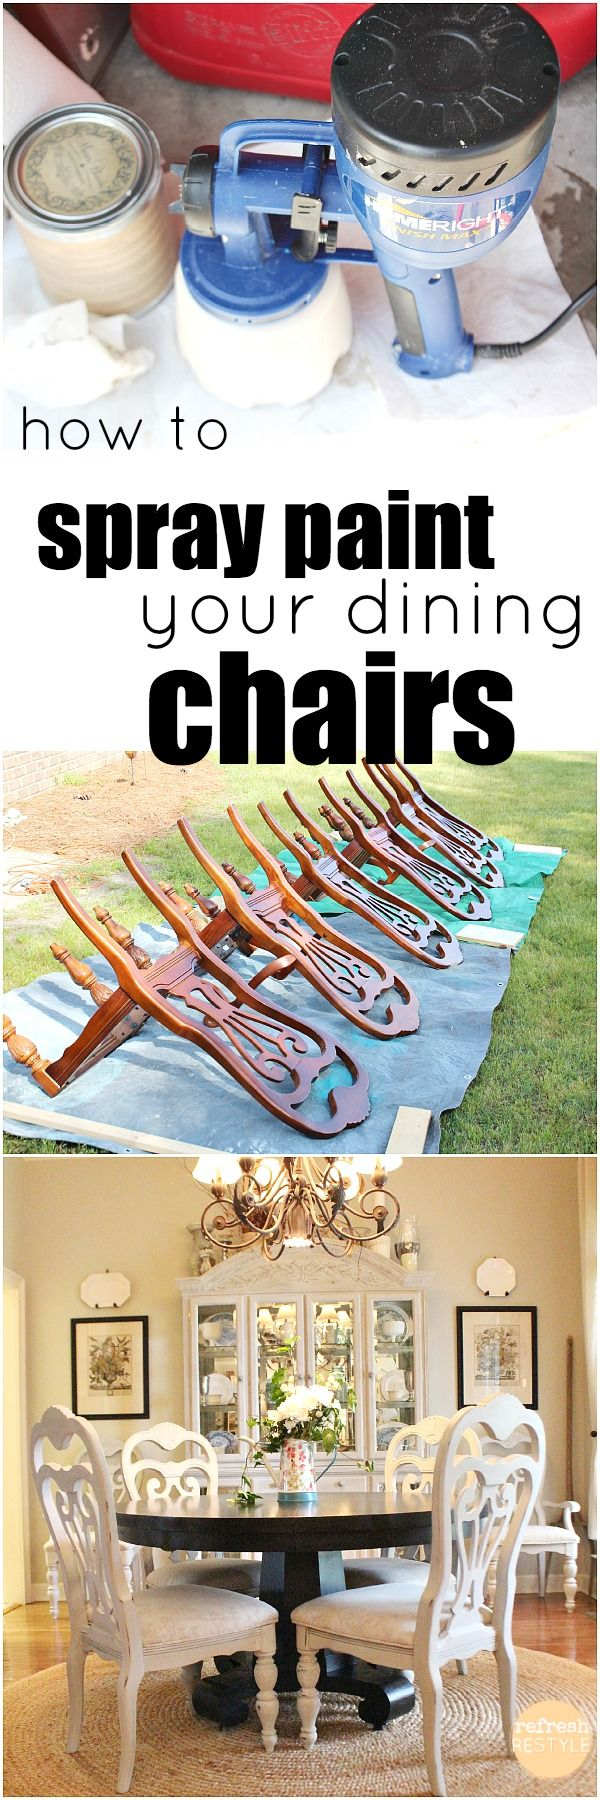 mens winter clothing How to spray paint dining chairs  homerightspraymax  diyproject  paintedfurniture